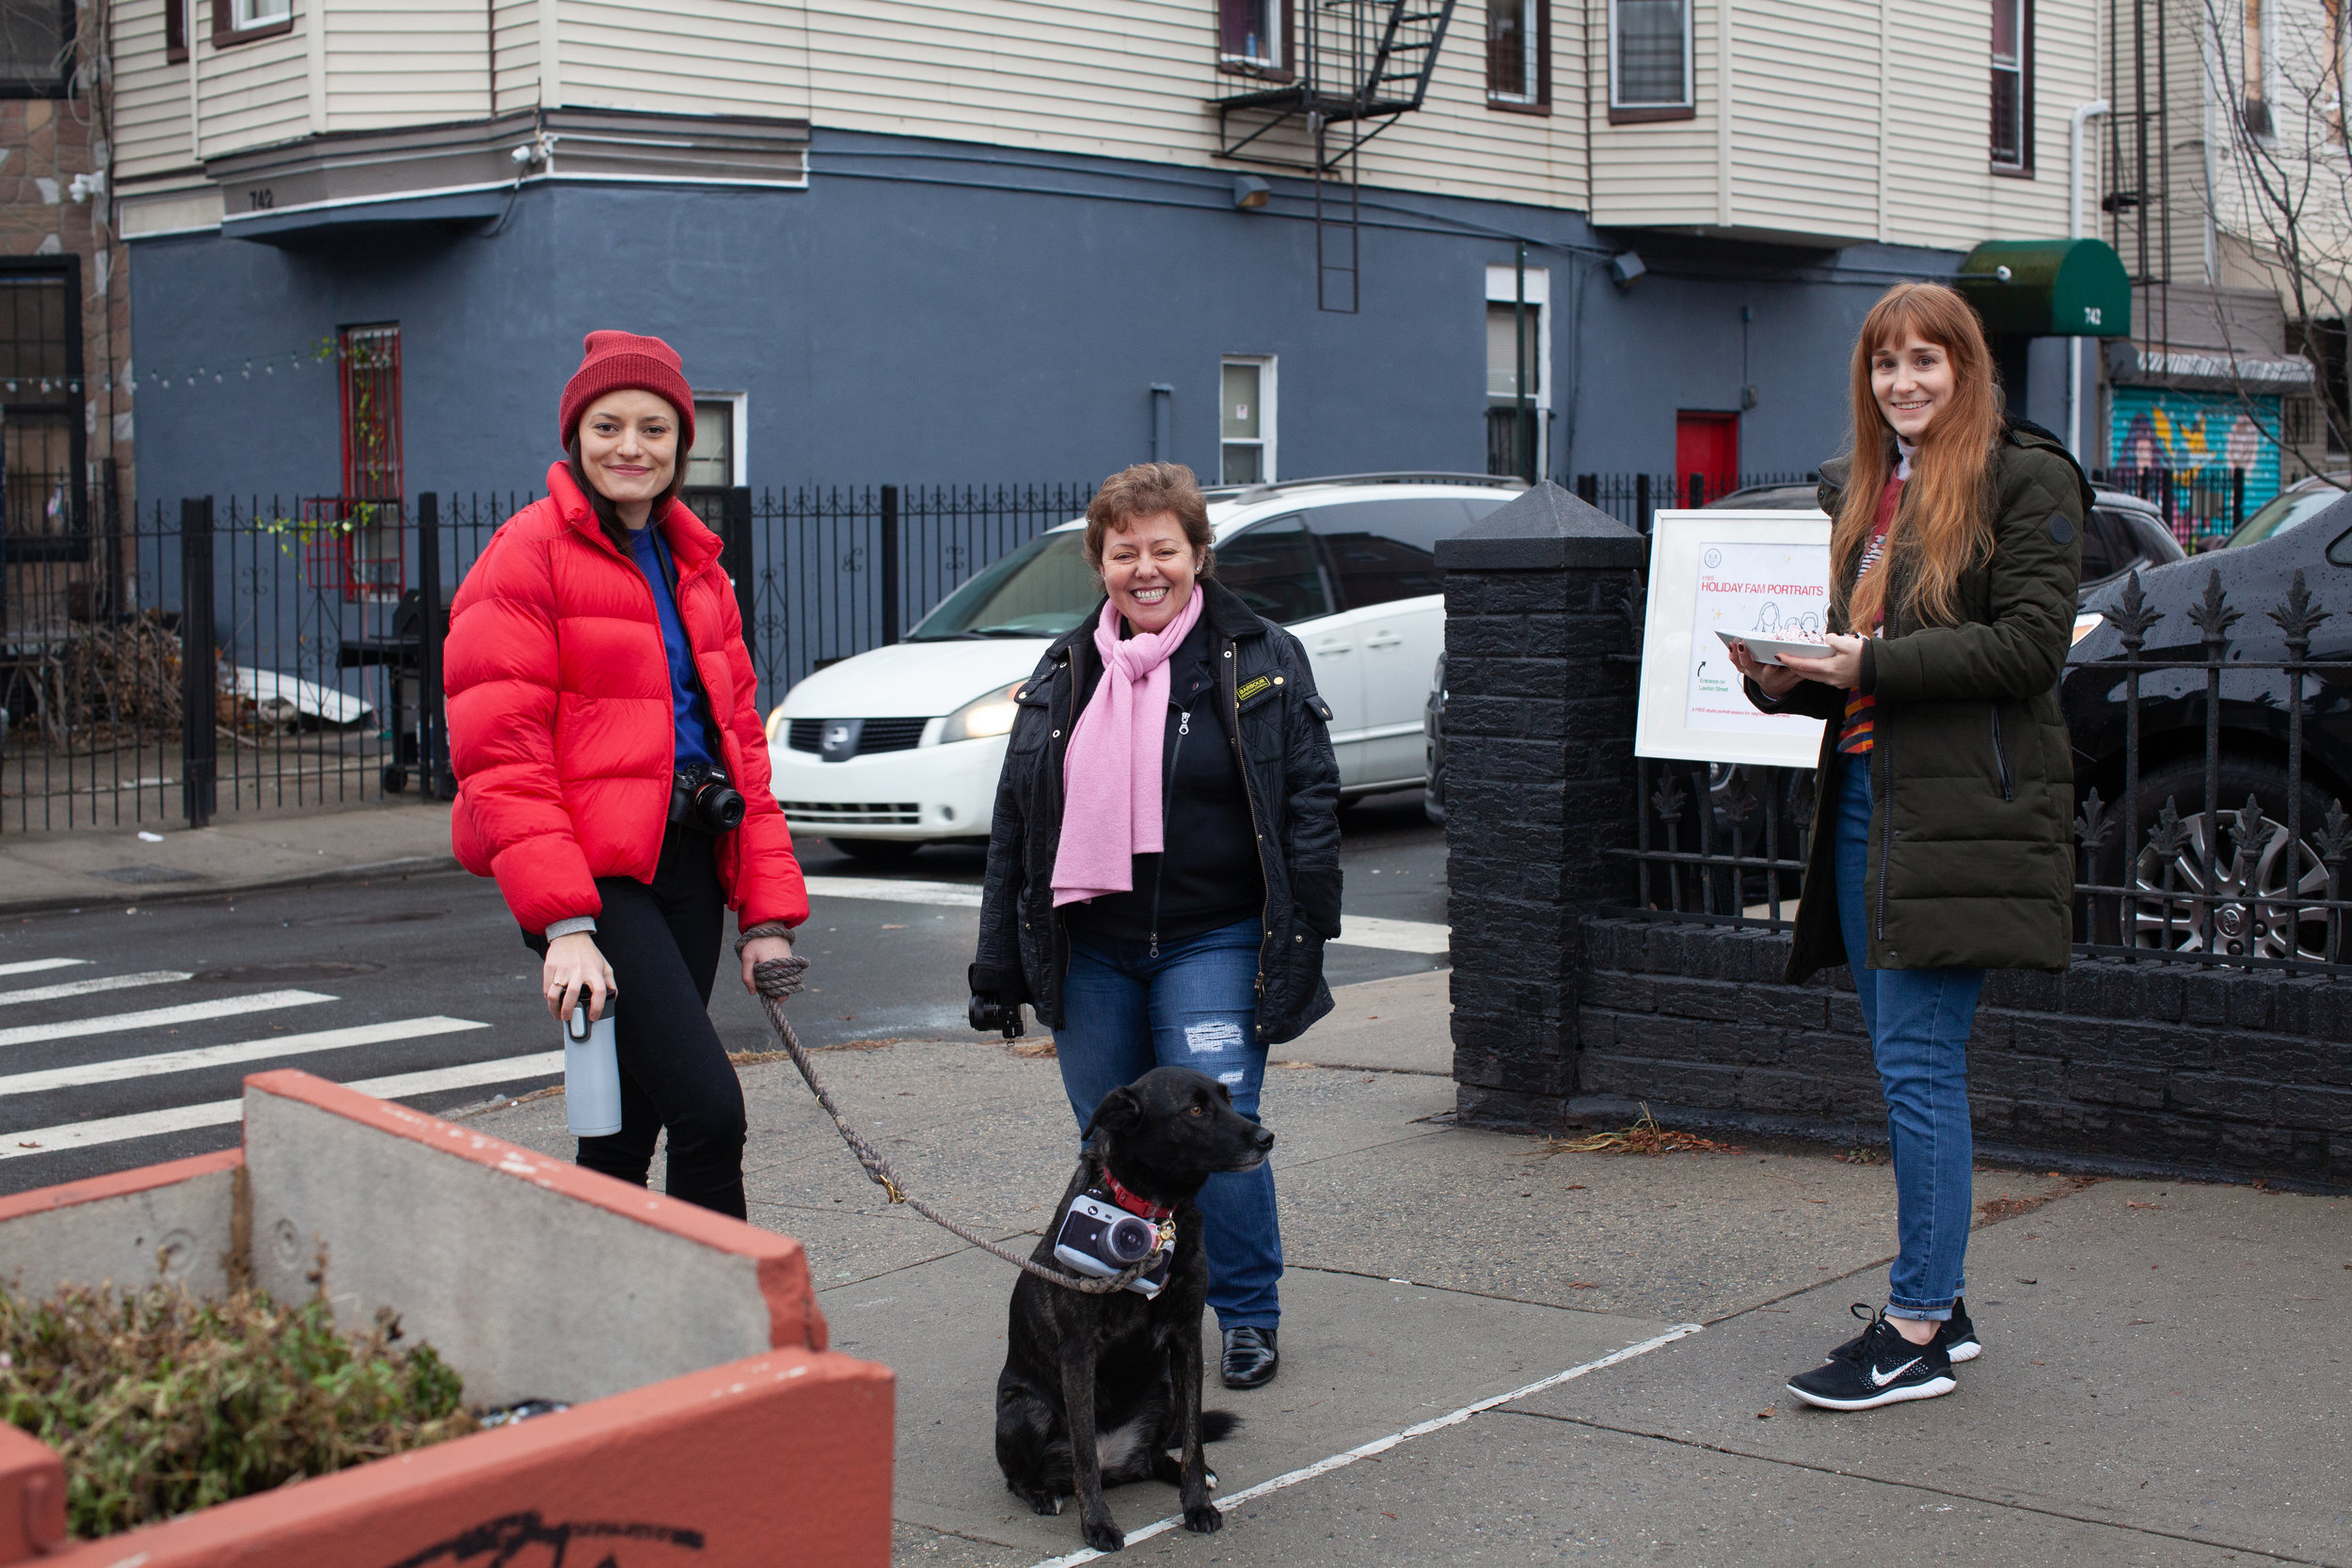 Iris Ebert, Mariana Spirindon, Gloria Cook and Leila spreading a little holiday cheer outside BKC.